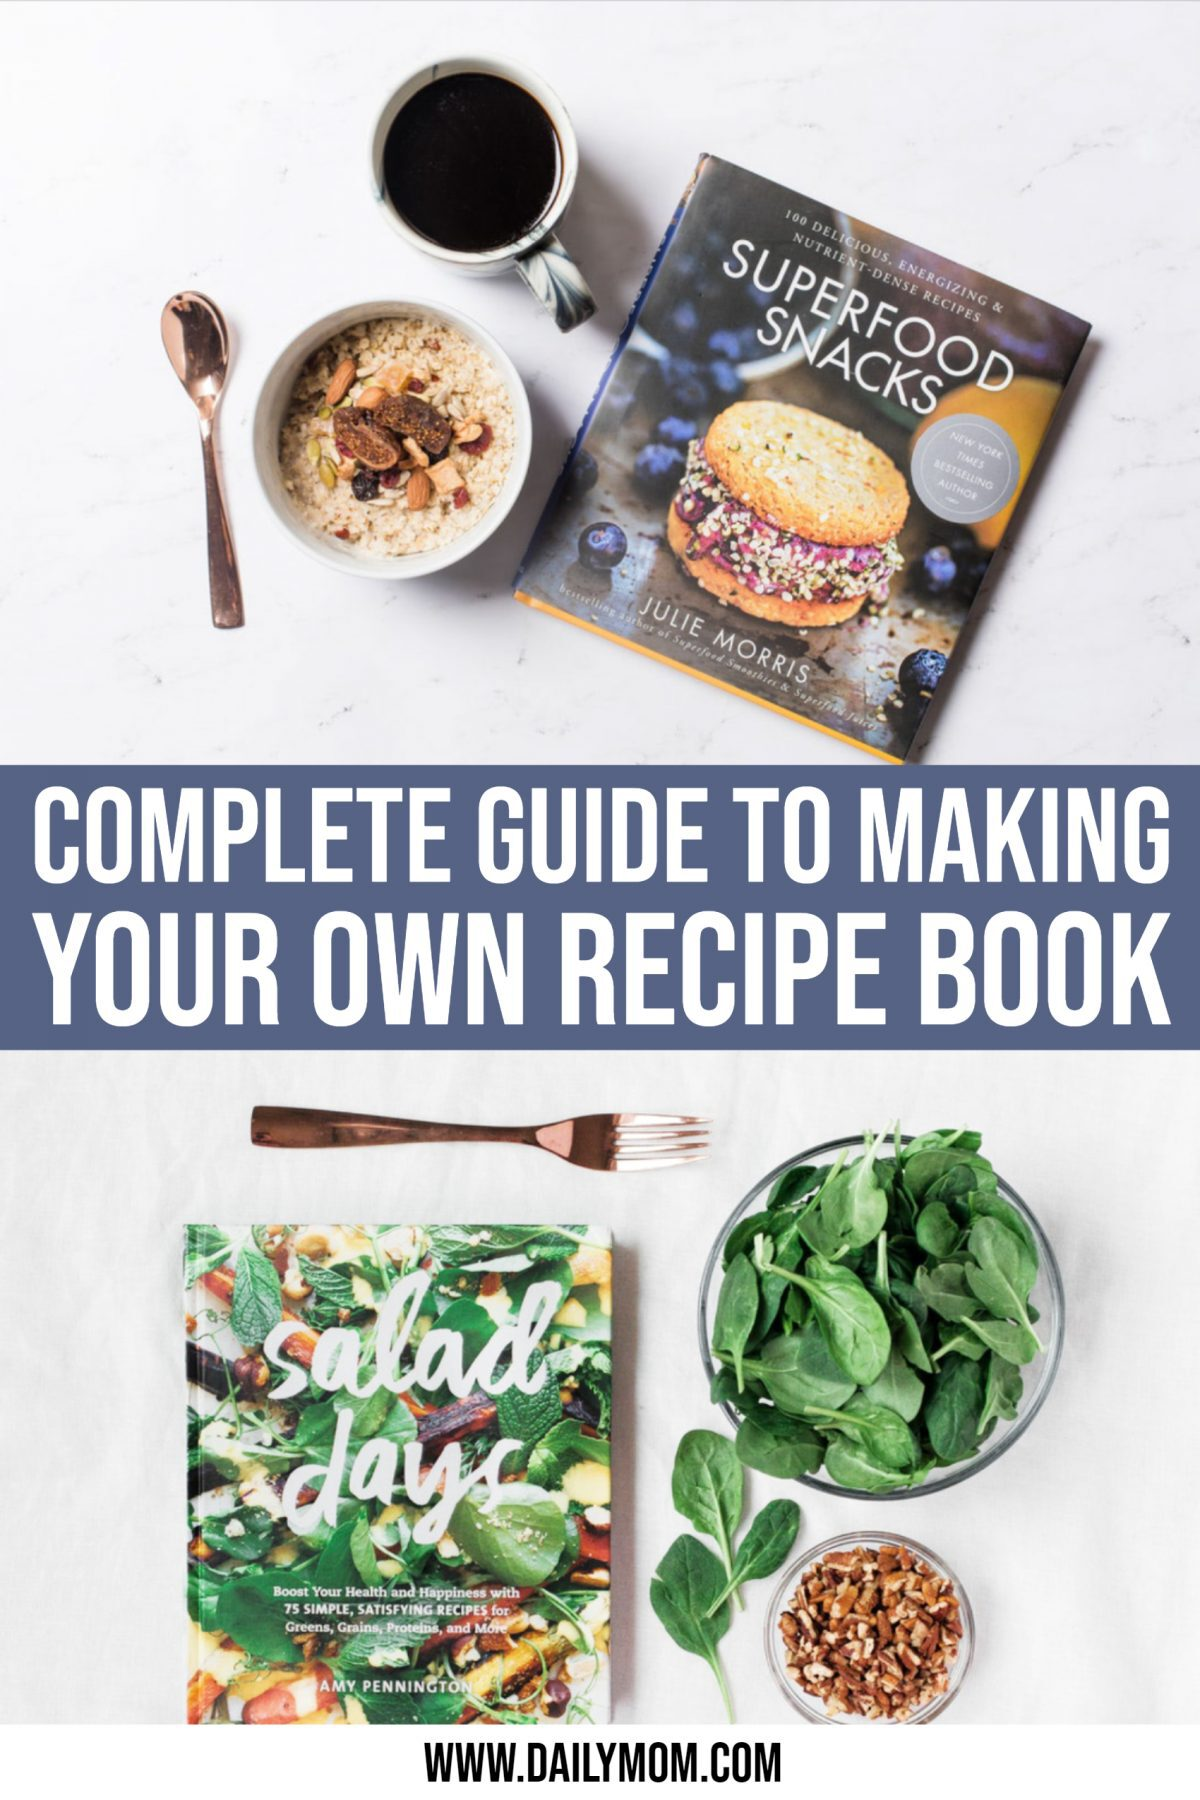 How To Make Your Own Recipe Book, Step-by-step Guide